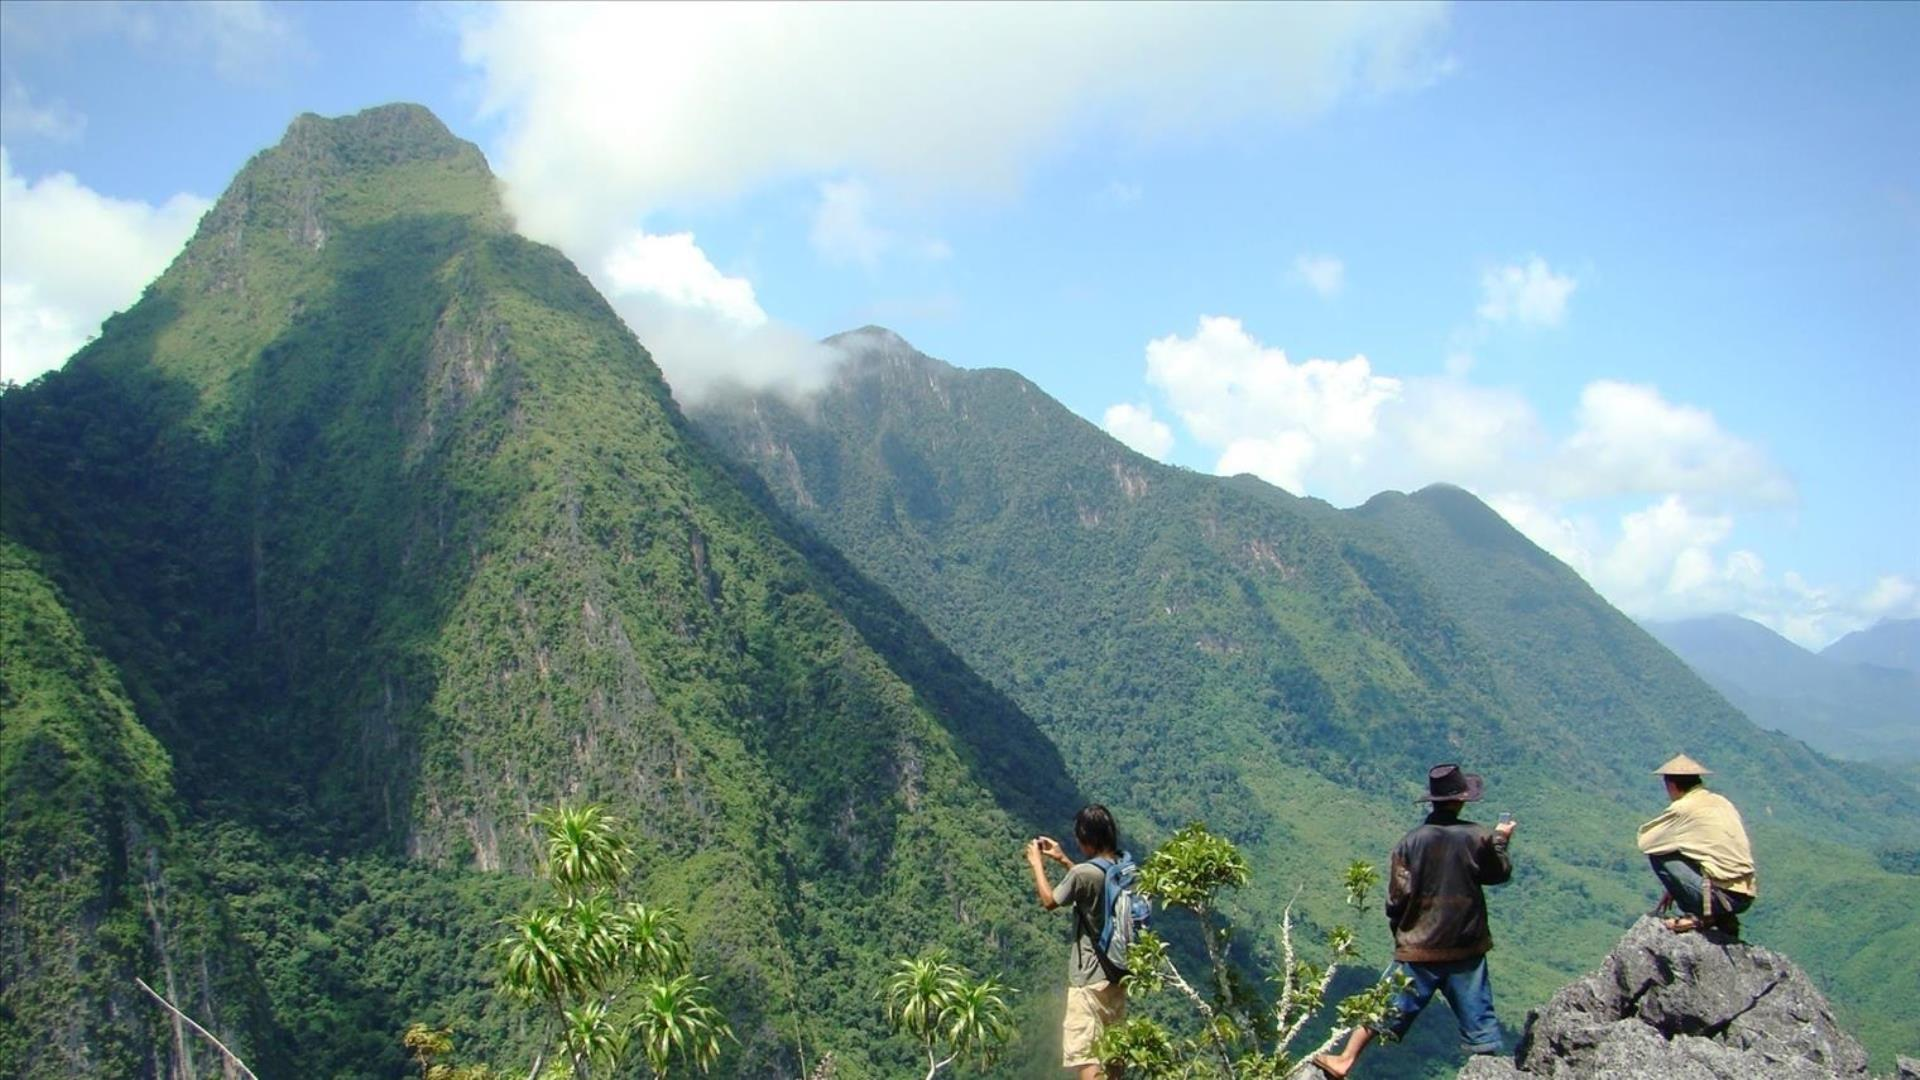 Laos, Nong Khiaw : Mountain View Tour -Half Day | Nong Khiaw Mountain View Hiking Tour